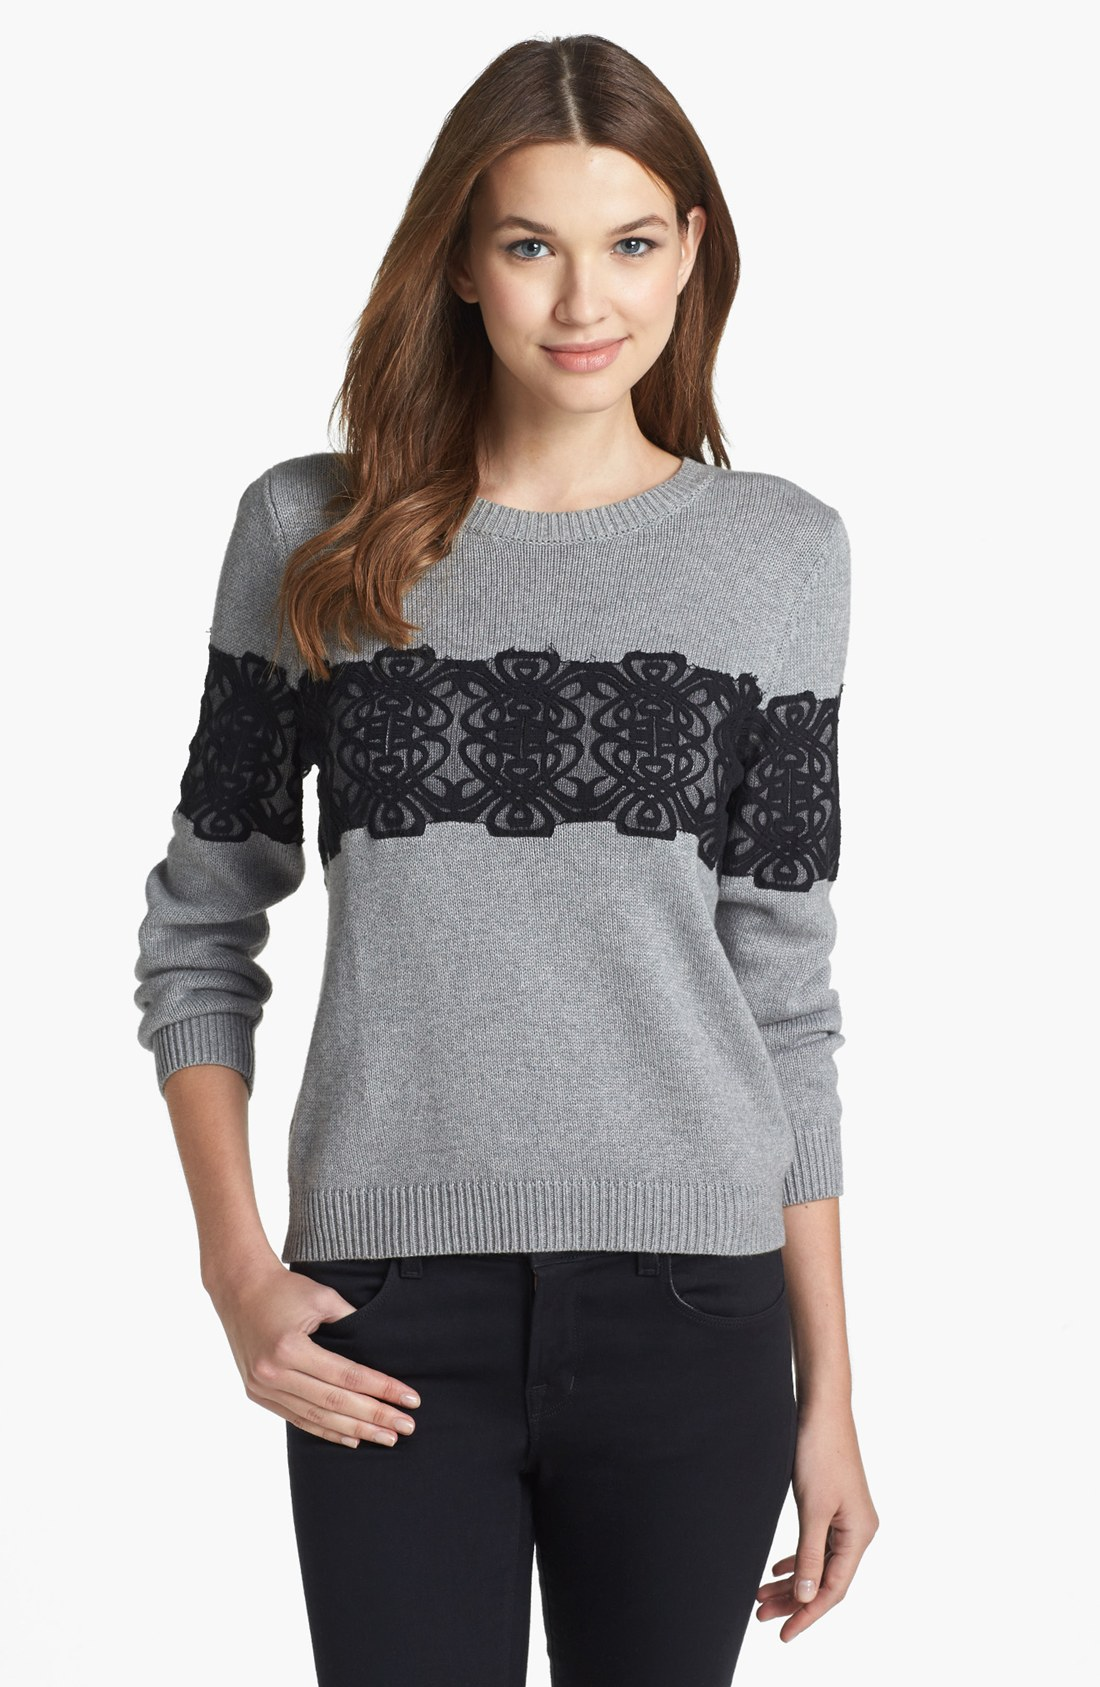 With a modern twist on a classic sweatshirt, this comfy top will turn heads everywhere you go. Embellished with beautiful pearls, this piece will deliver chart-topping style.